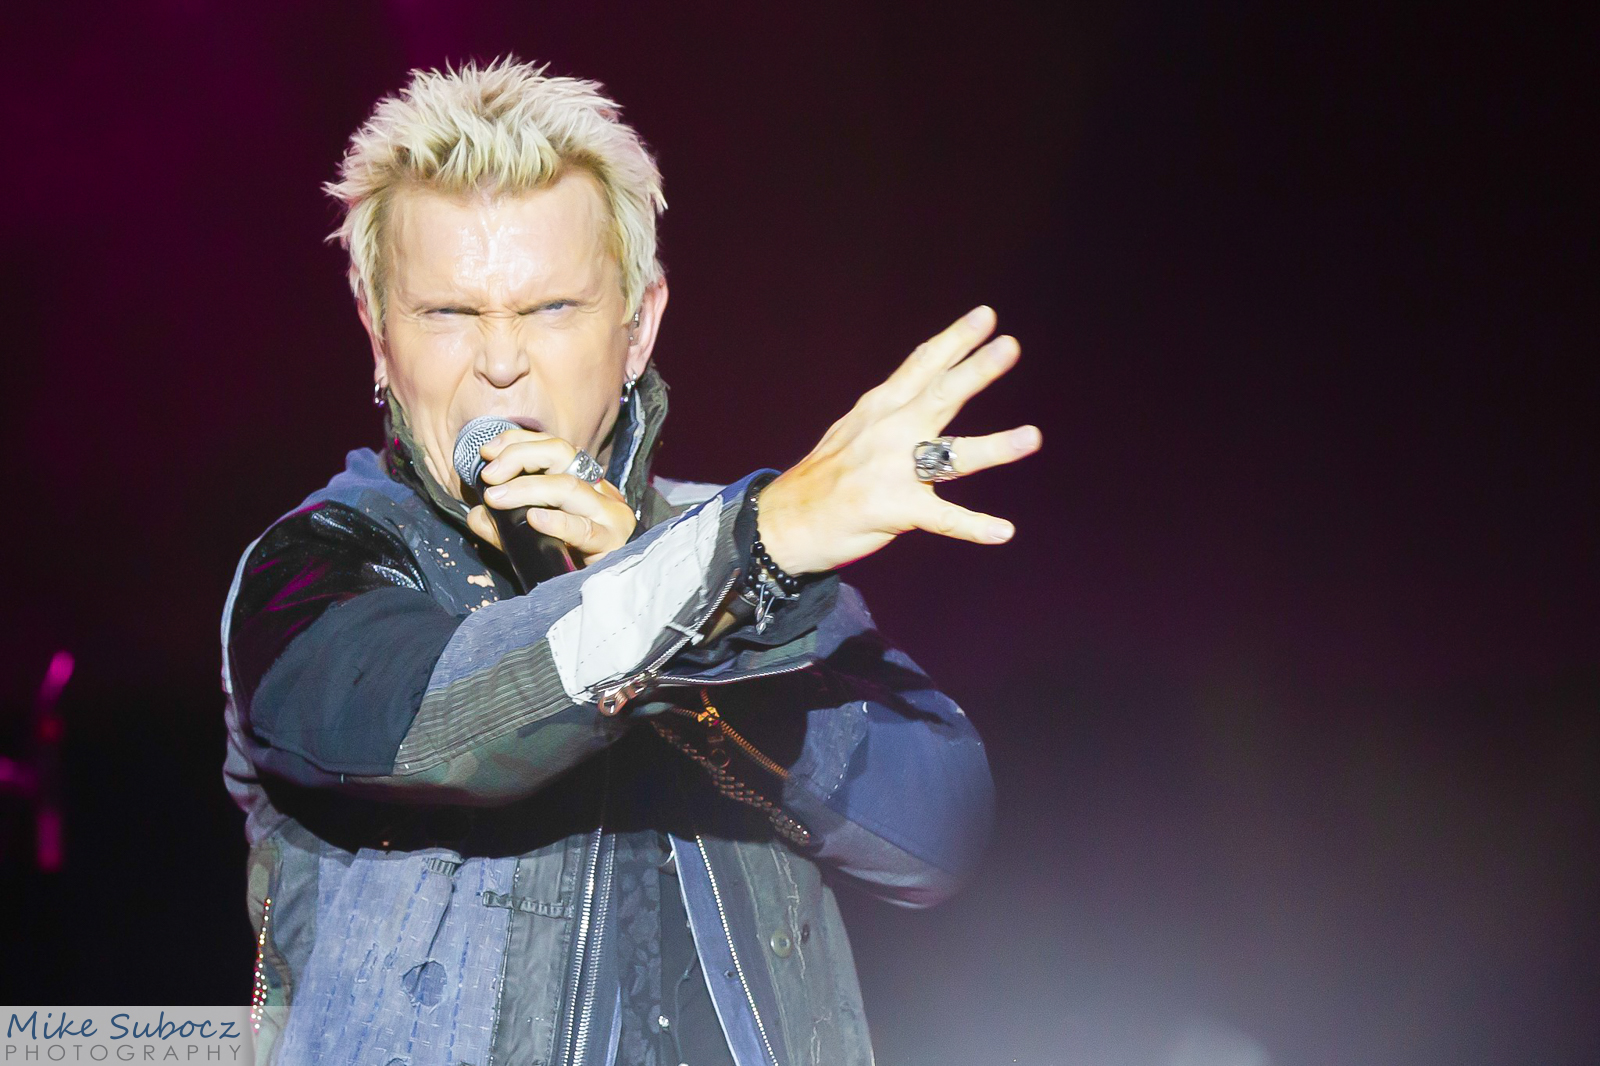 Billy Idol concert image